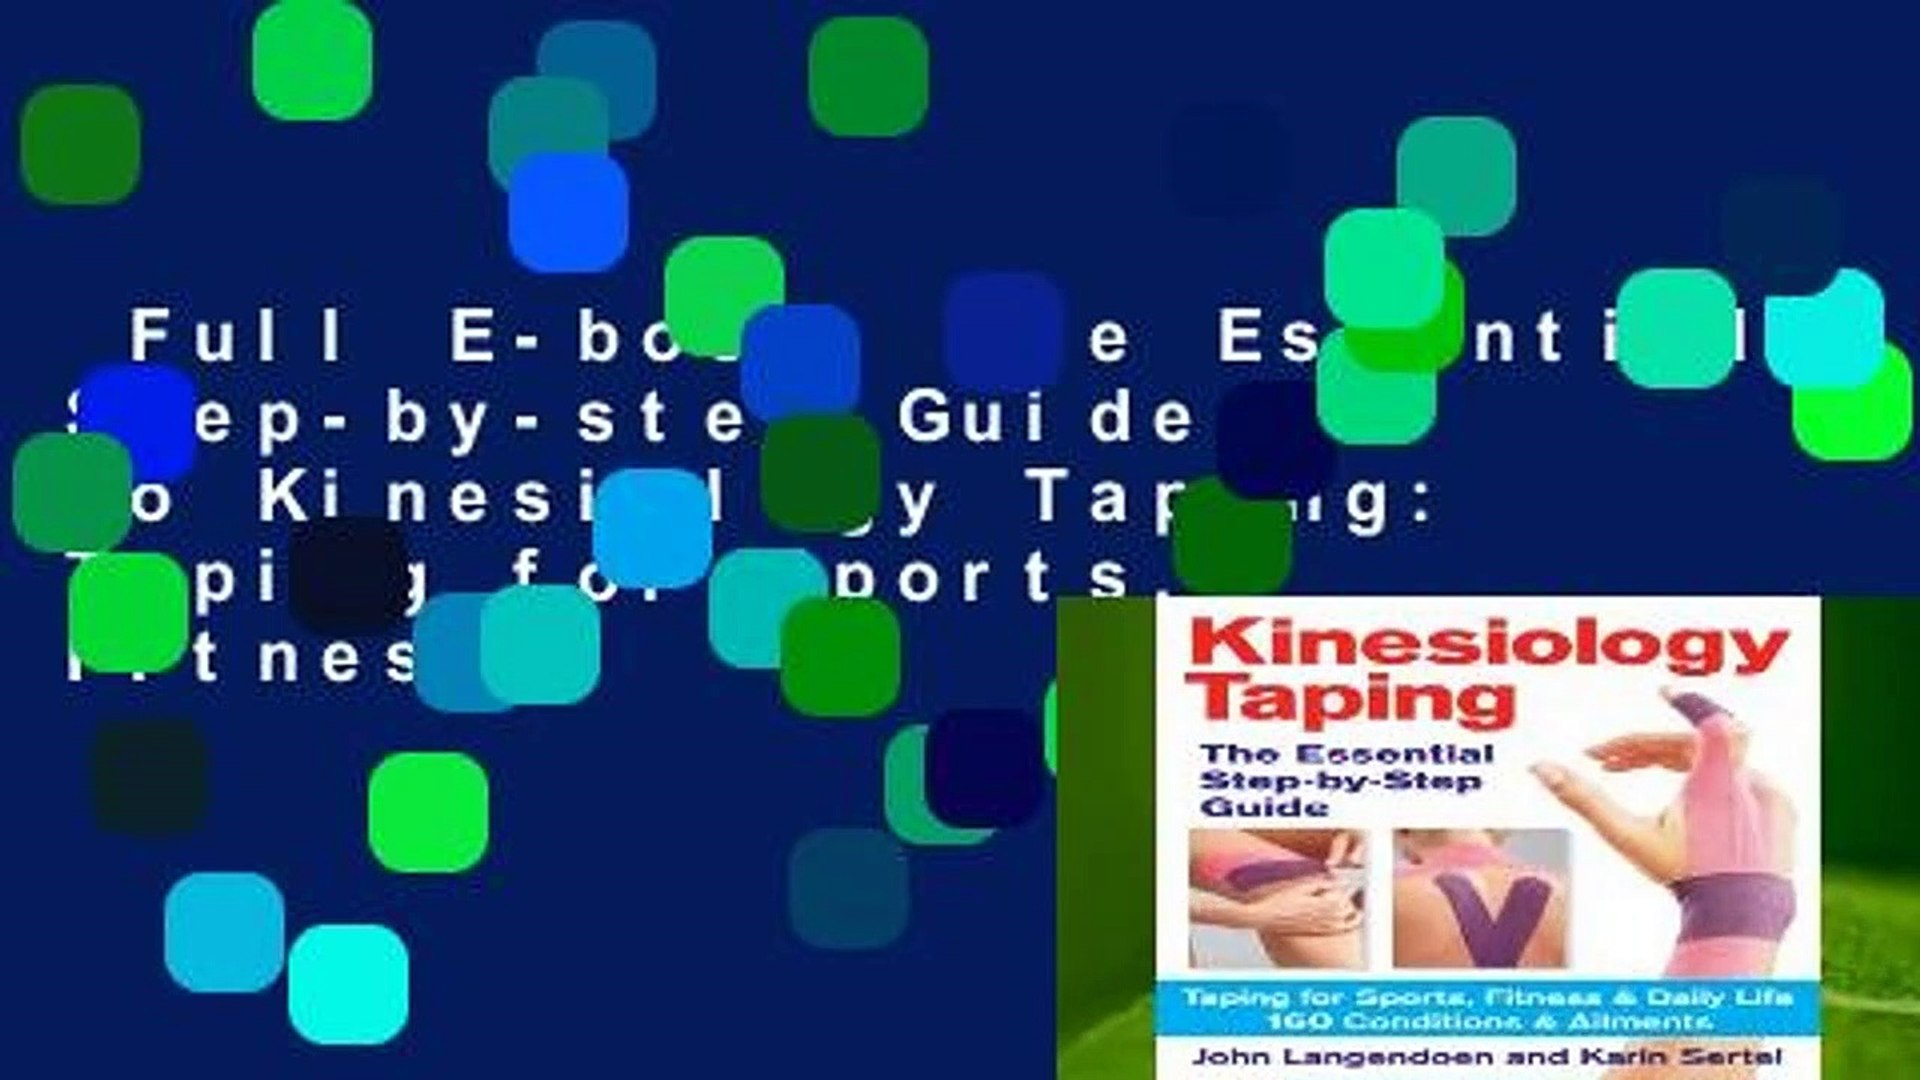 Full E book The Essential Step by step Guide to Kinesiology Taping 1920x1080